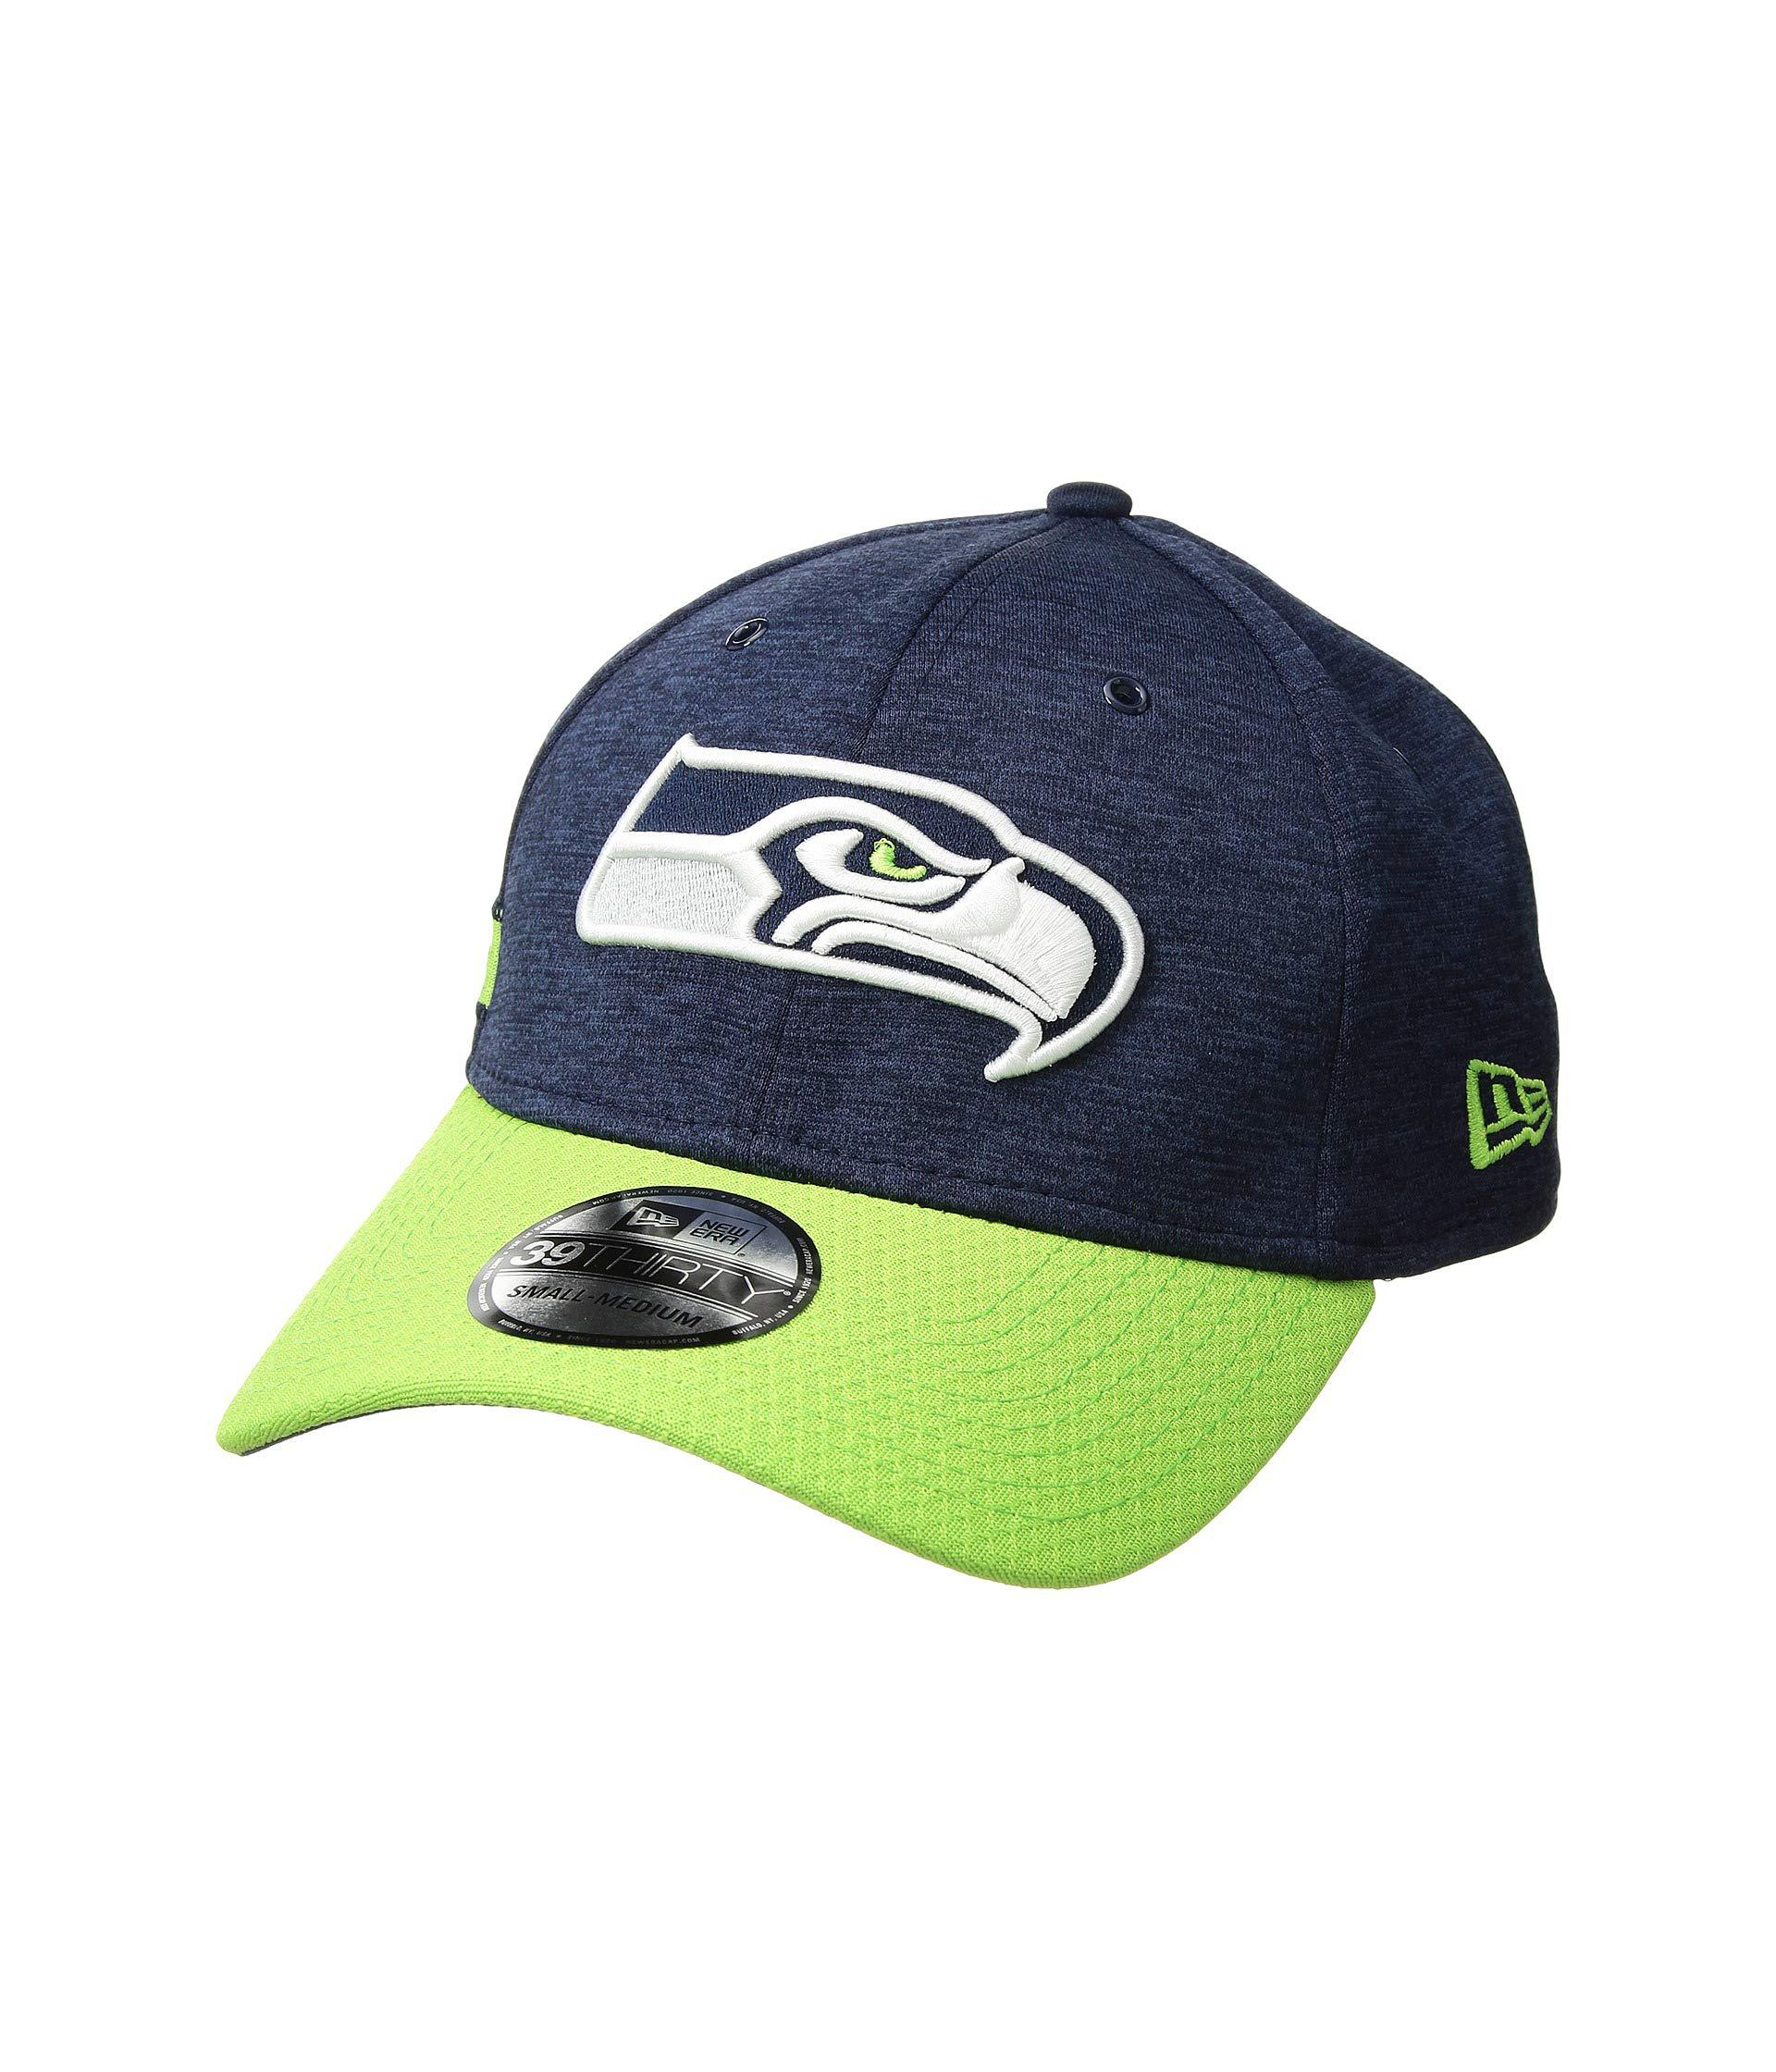 800288c1ec9 Lyst - KTZ 39thirty Official Sideline Home Stretch Fit - Seattle ...